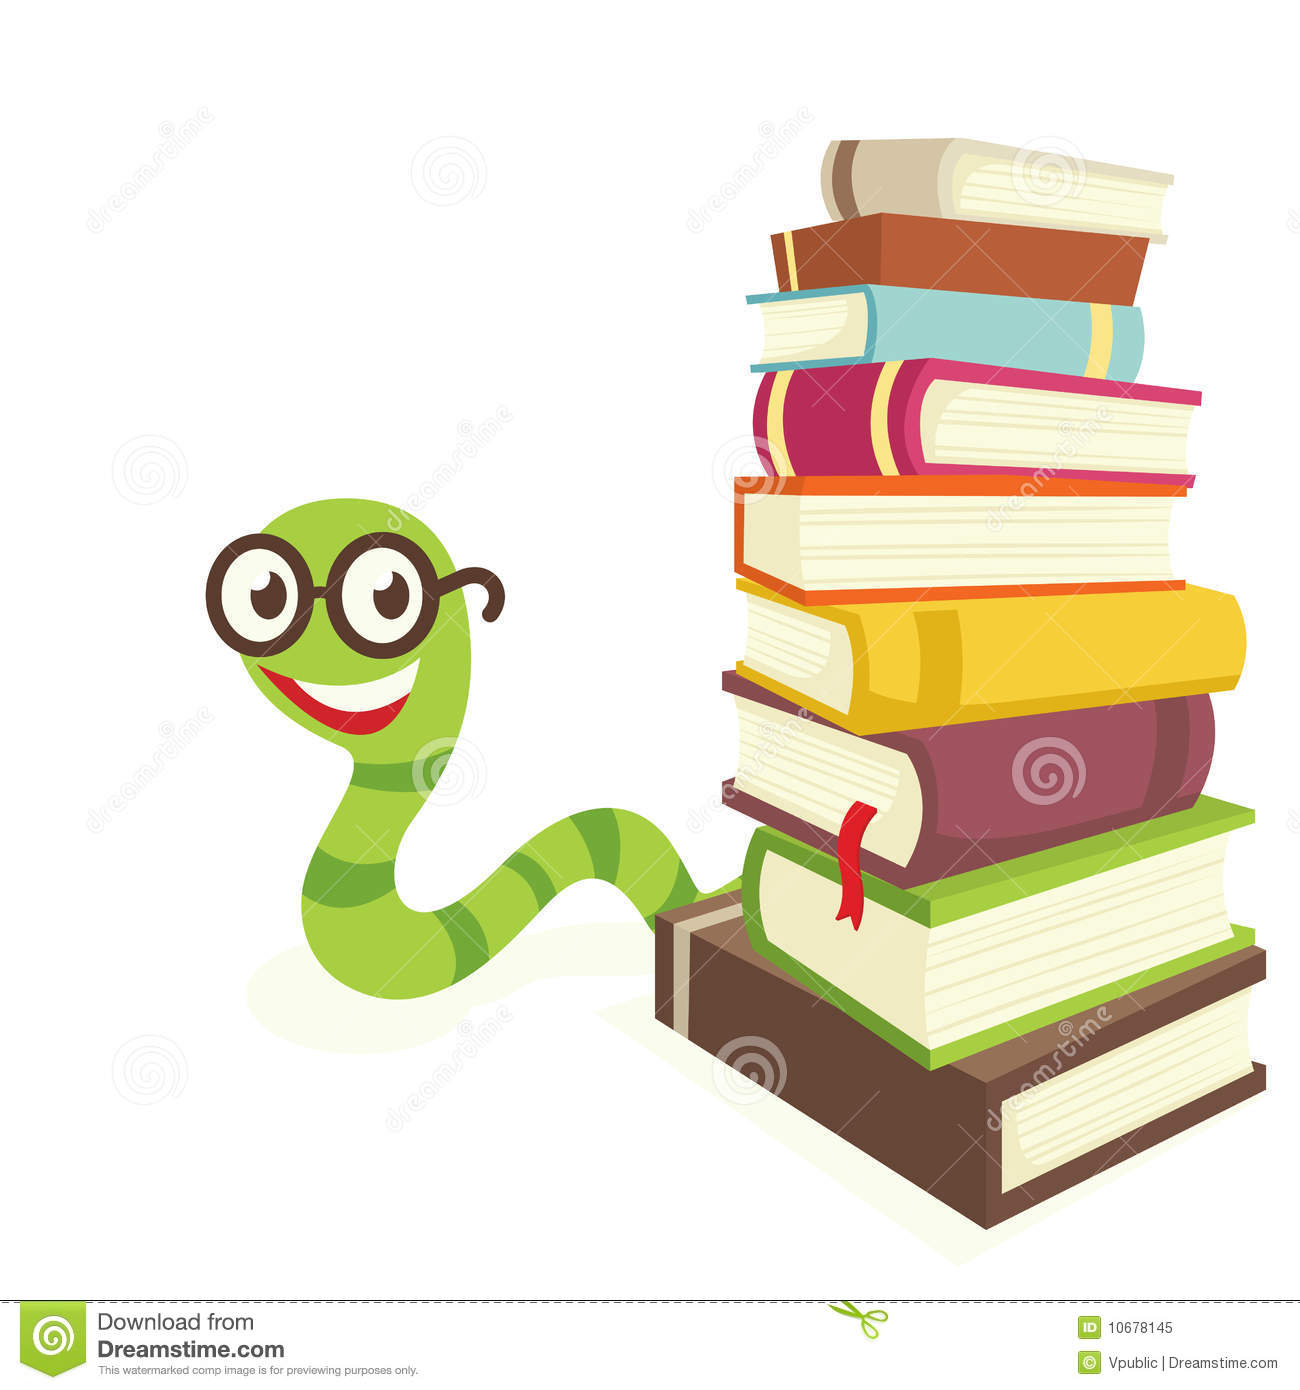 Bookworm Royalty Free Stock Photo - Image: 10678145